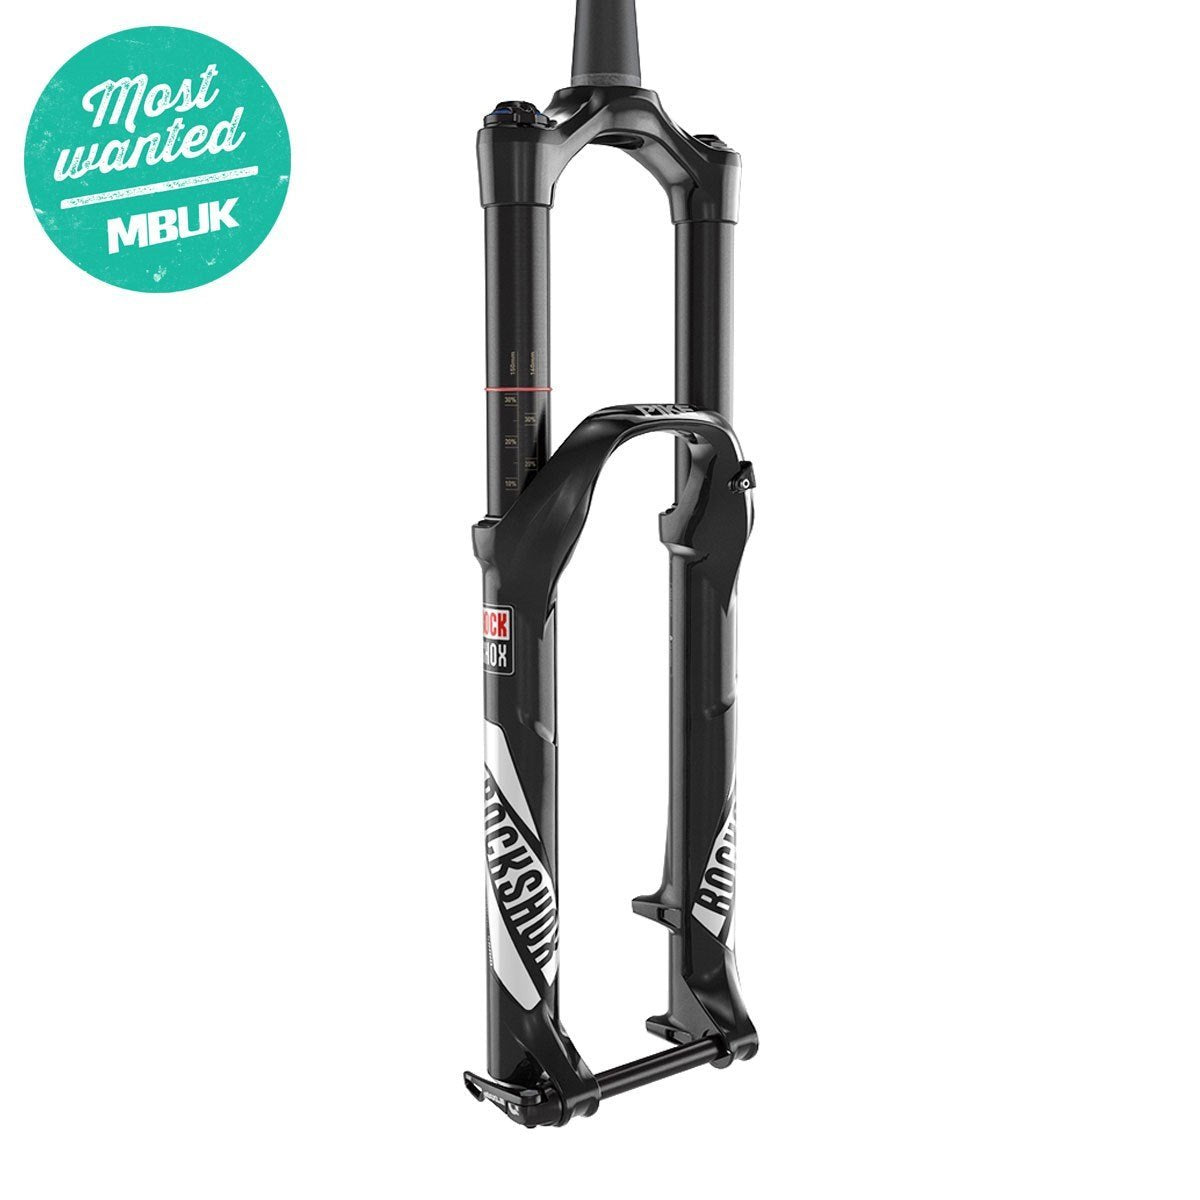 "Rockshox Components > Suspension Rockshox PIKE RCT3 - 29"" MAXLELITE15 SOLO AIR 140 DIFFUSION BLACK CROWN ADJ ALUM STR TPR DISC"